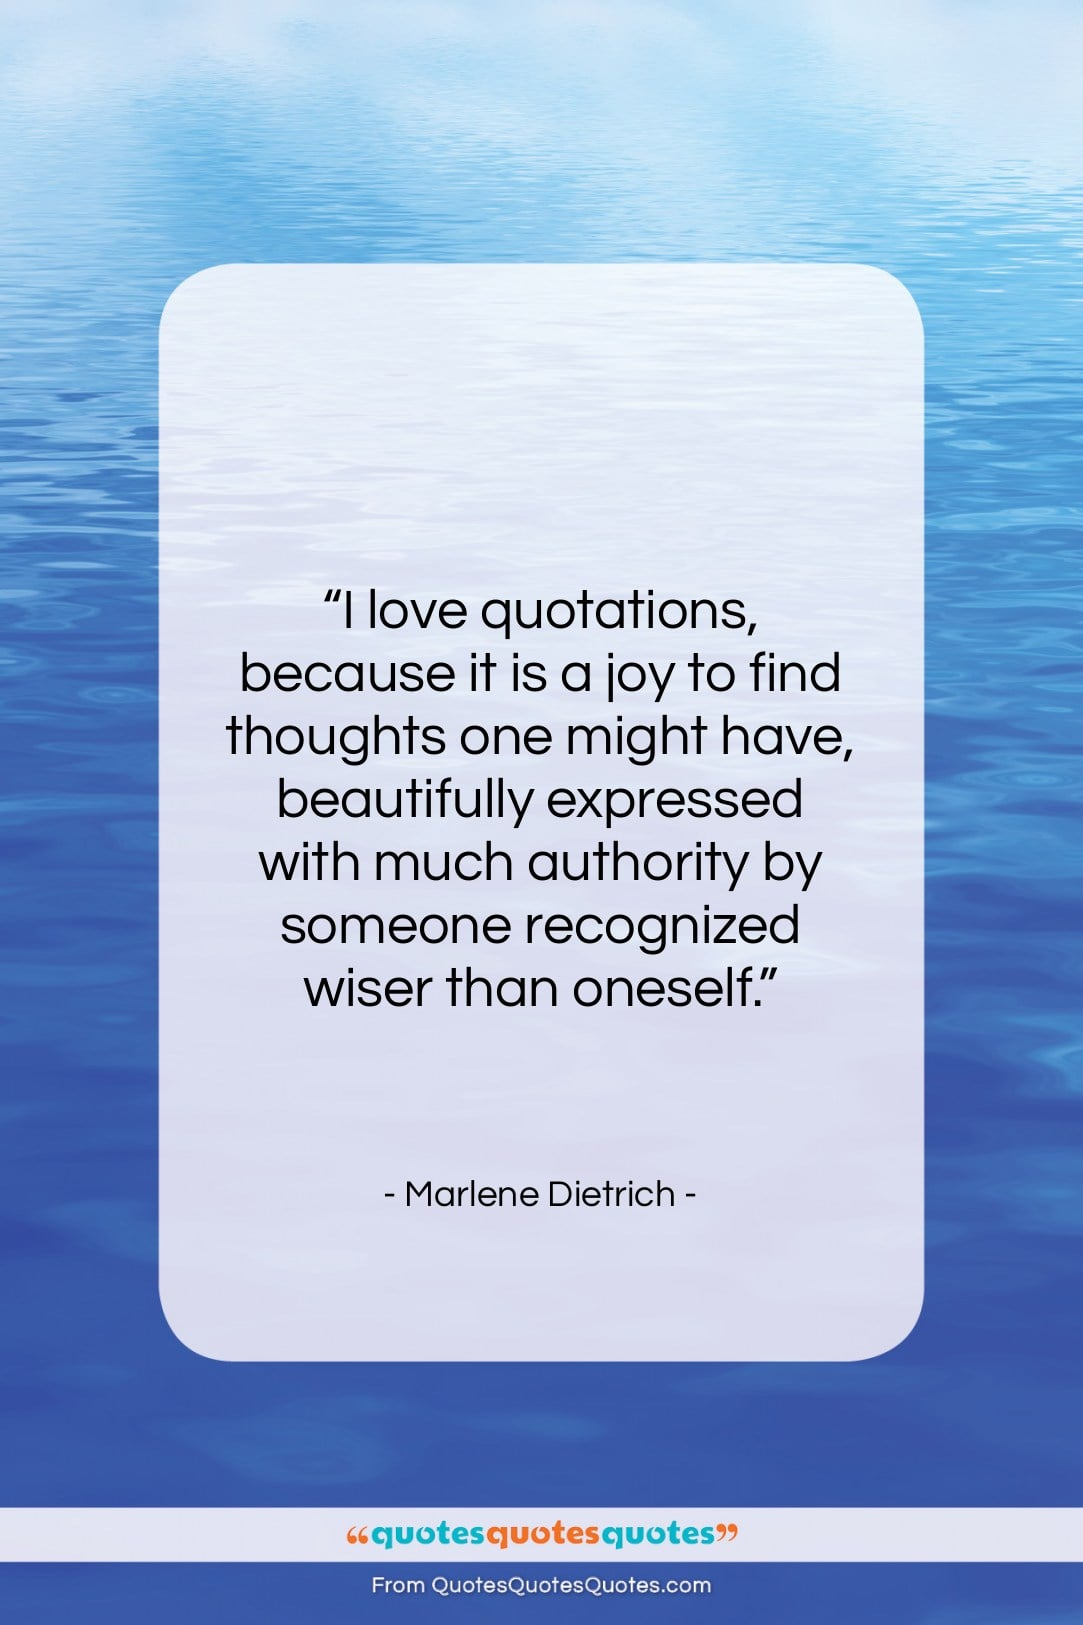 """Marlene Dietrich quote: """"I love quotations because it is a…""""- at QuotesQuotesQuotes.com"""